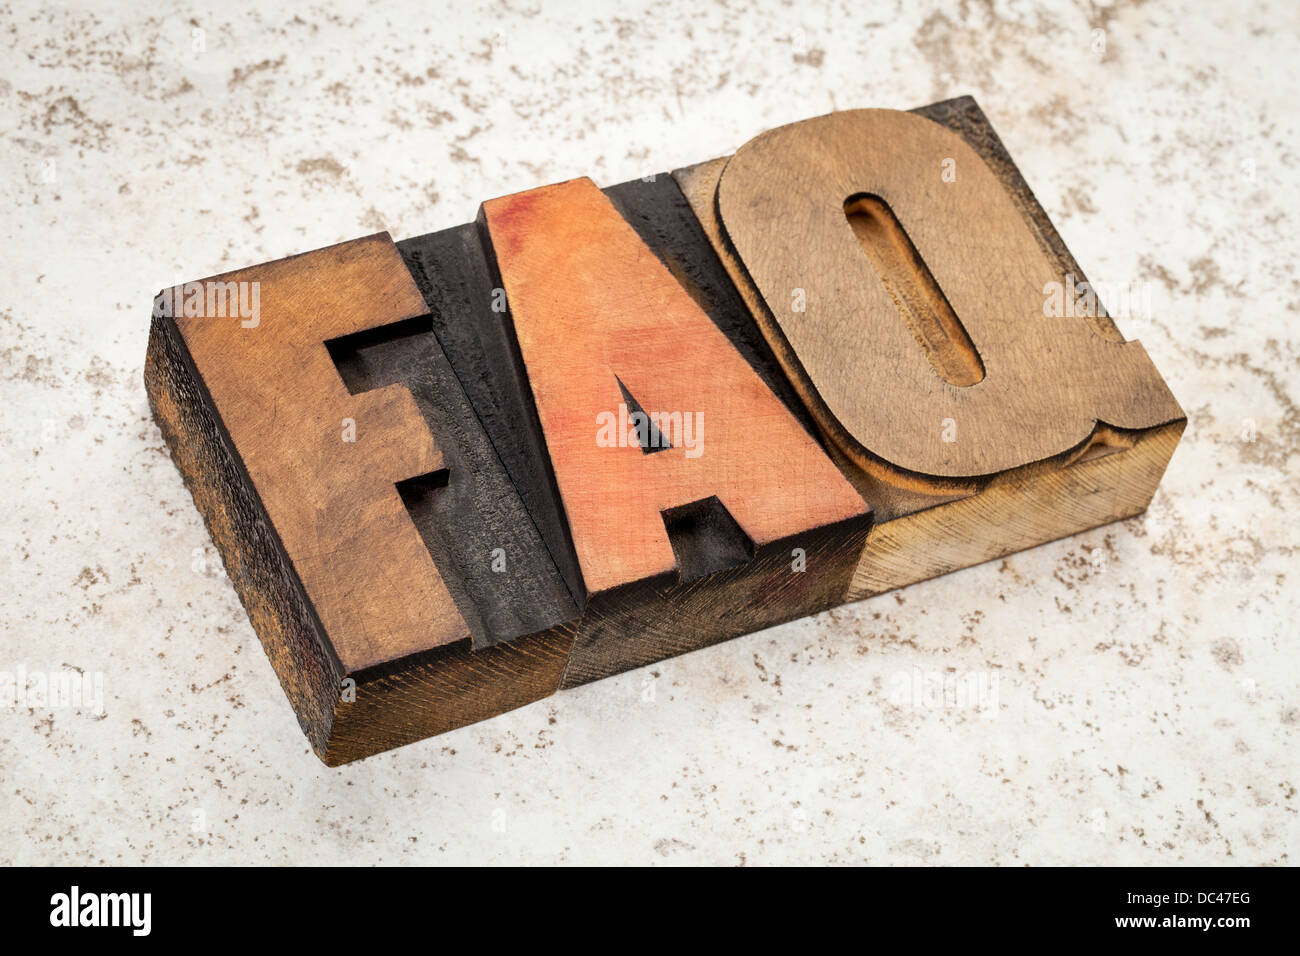 frequently asked questions - FAQ acronym - text in vintage letterpress wood type on a ceramic tile background - Stock Image